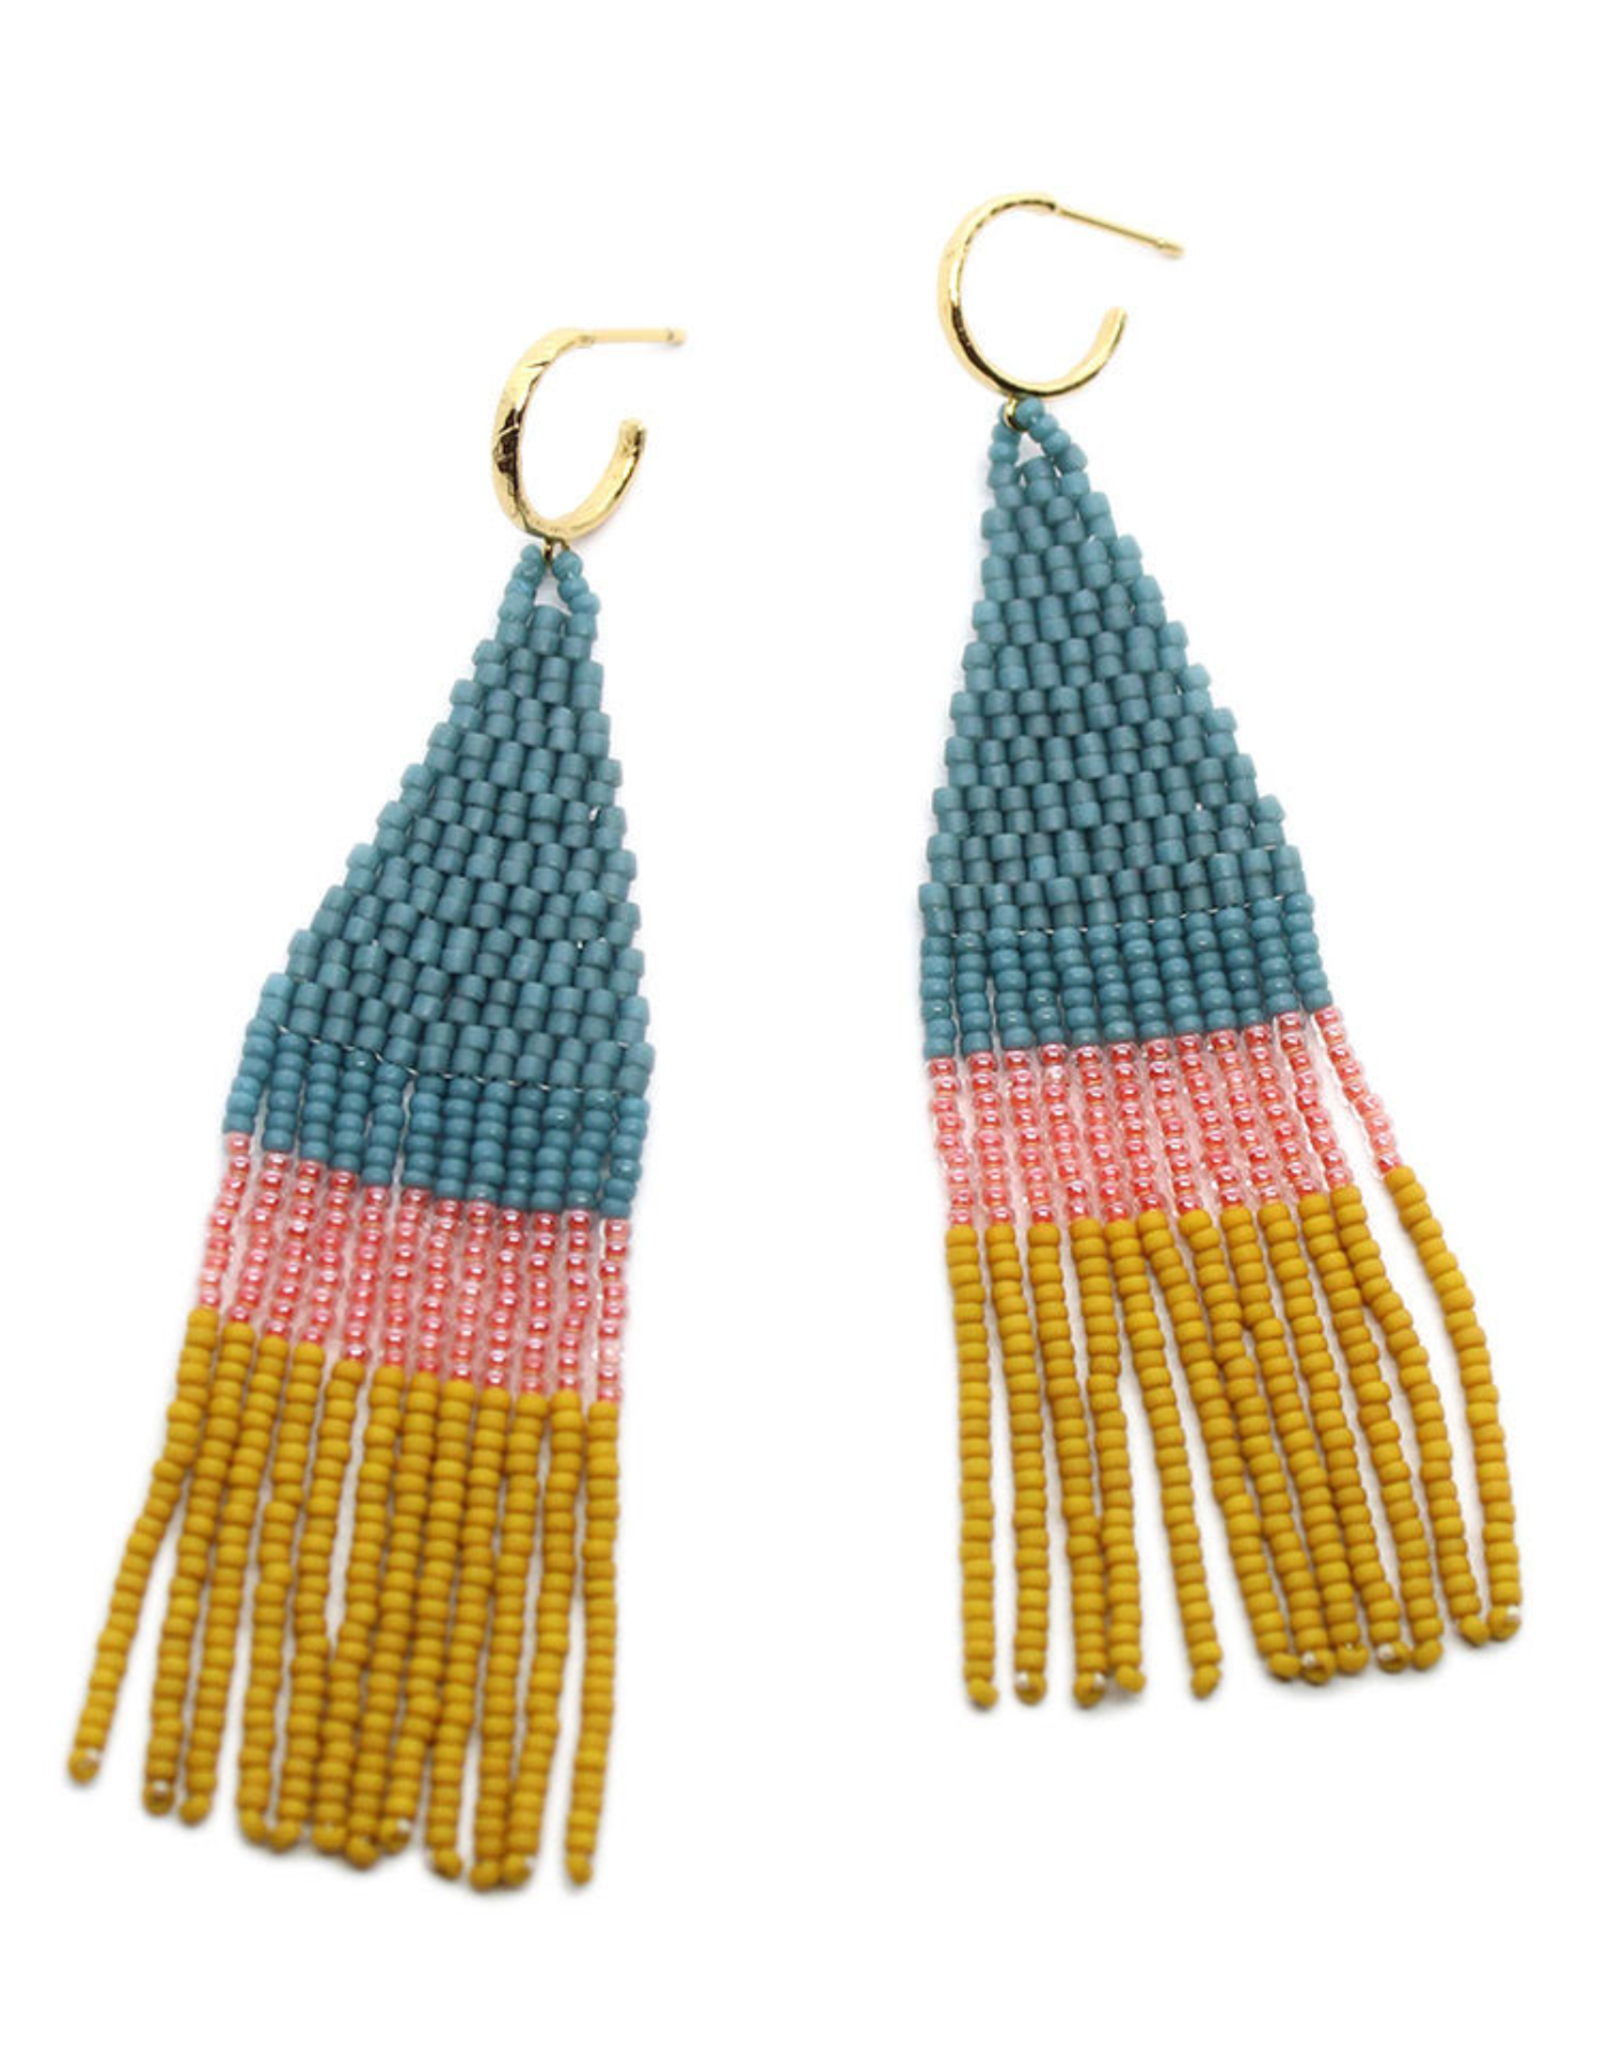 BLUMA PROJECT EARRING DANGLE FRANJA DENIM BLUE PINK AND YELLOW BEADS